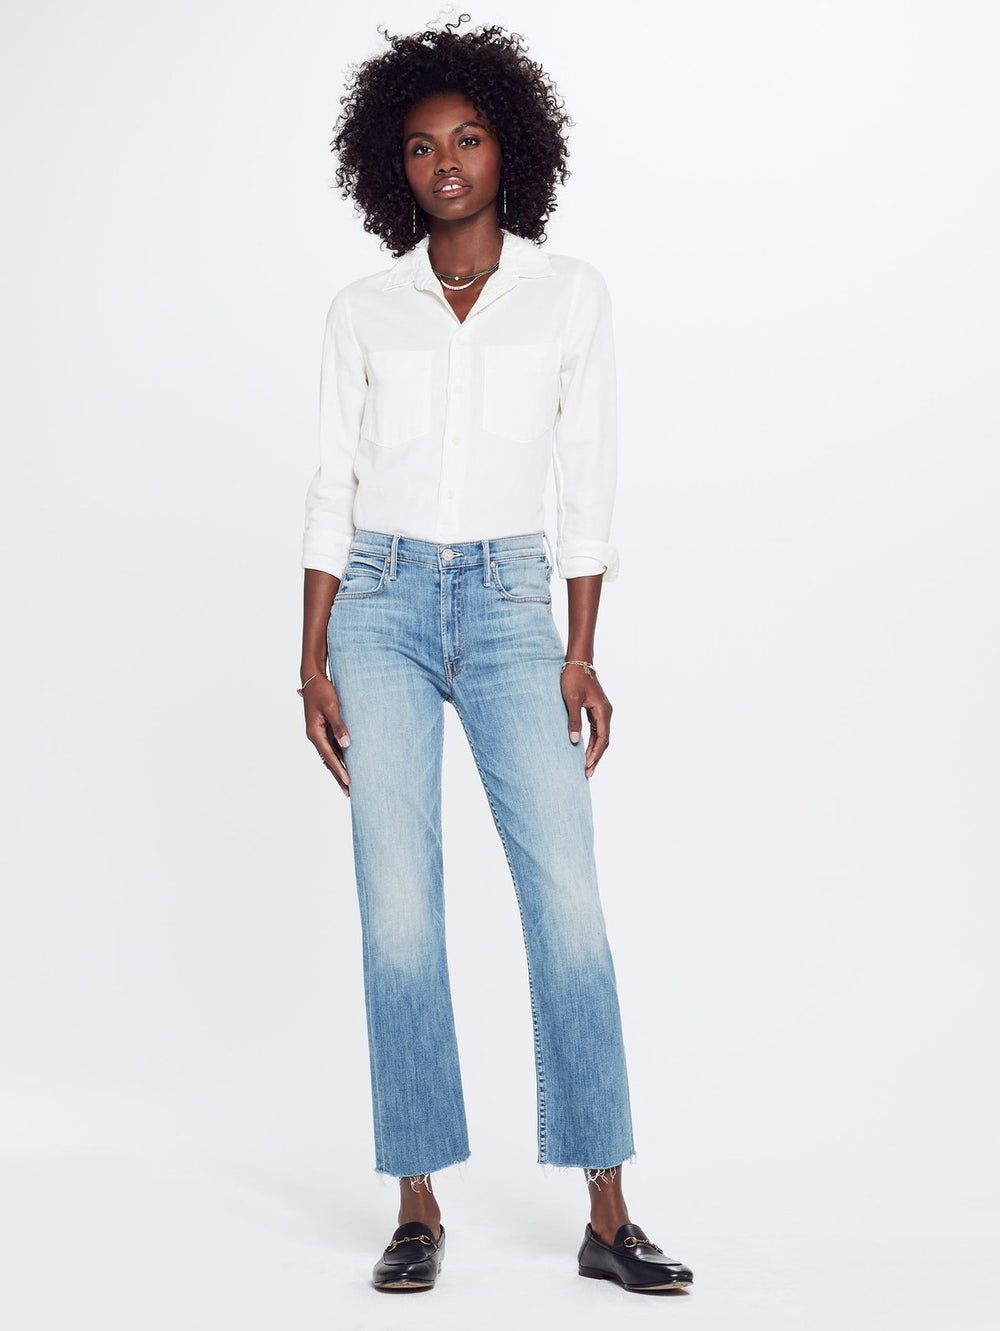 Dutchie Ankle Fray Jean - Lemonade and Lies at Maximillia eBoutique.